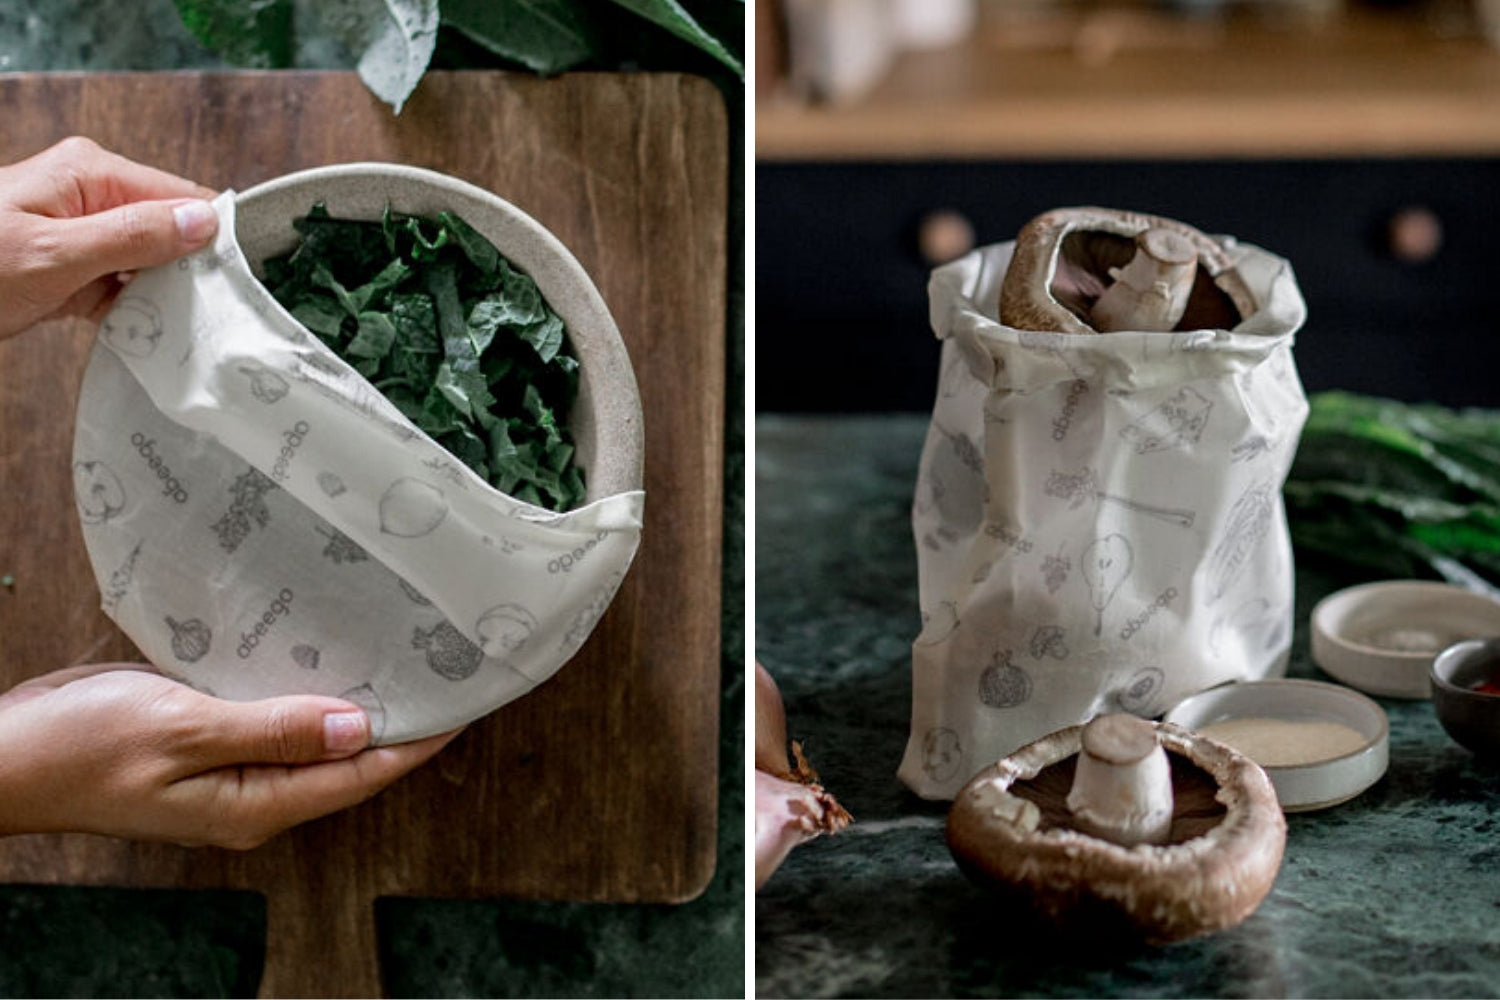 Save leftovers with Abeego Beeswax Wraps | Zero waste bowl covers and plastic free food bags